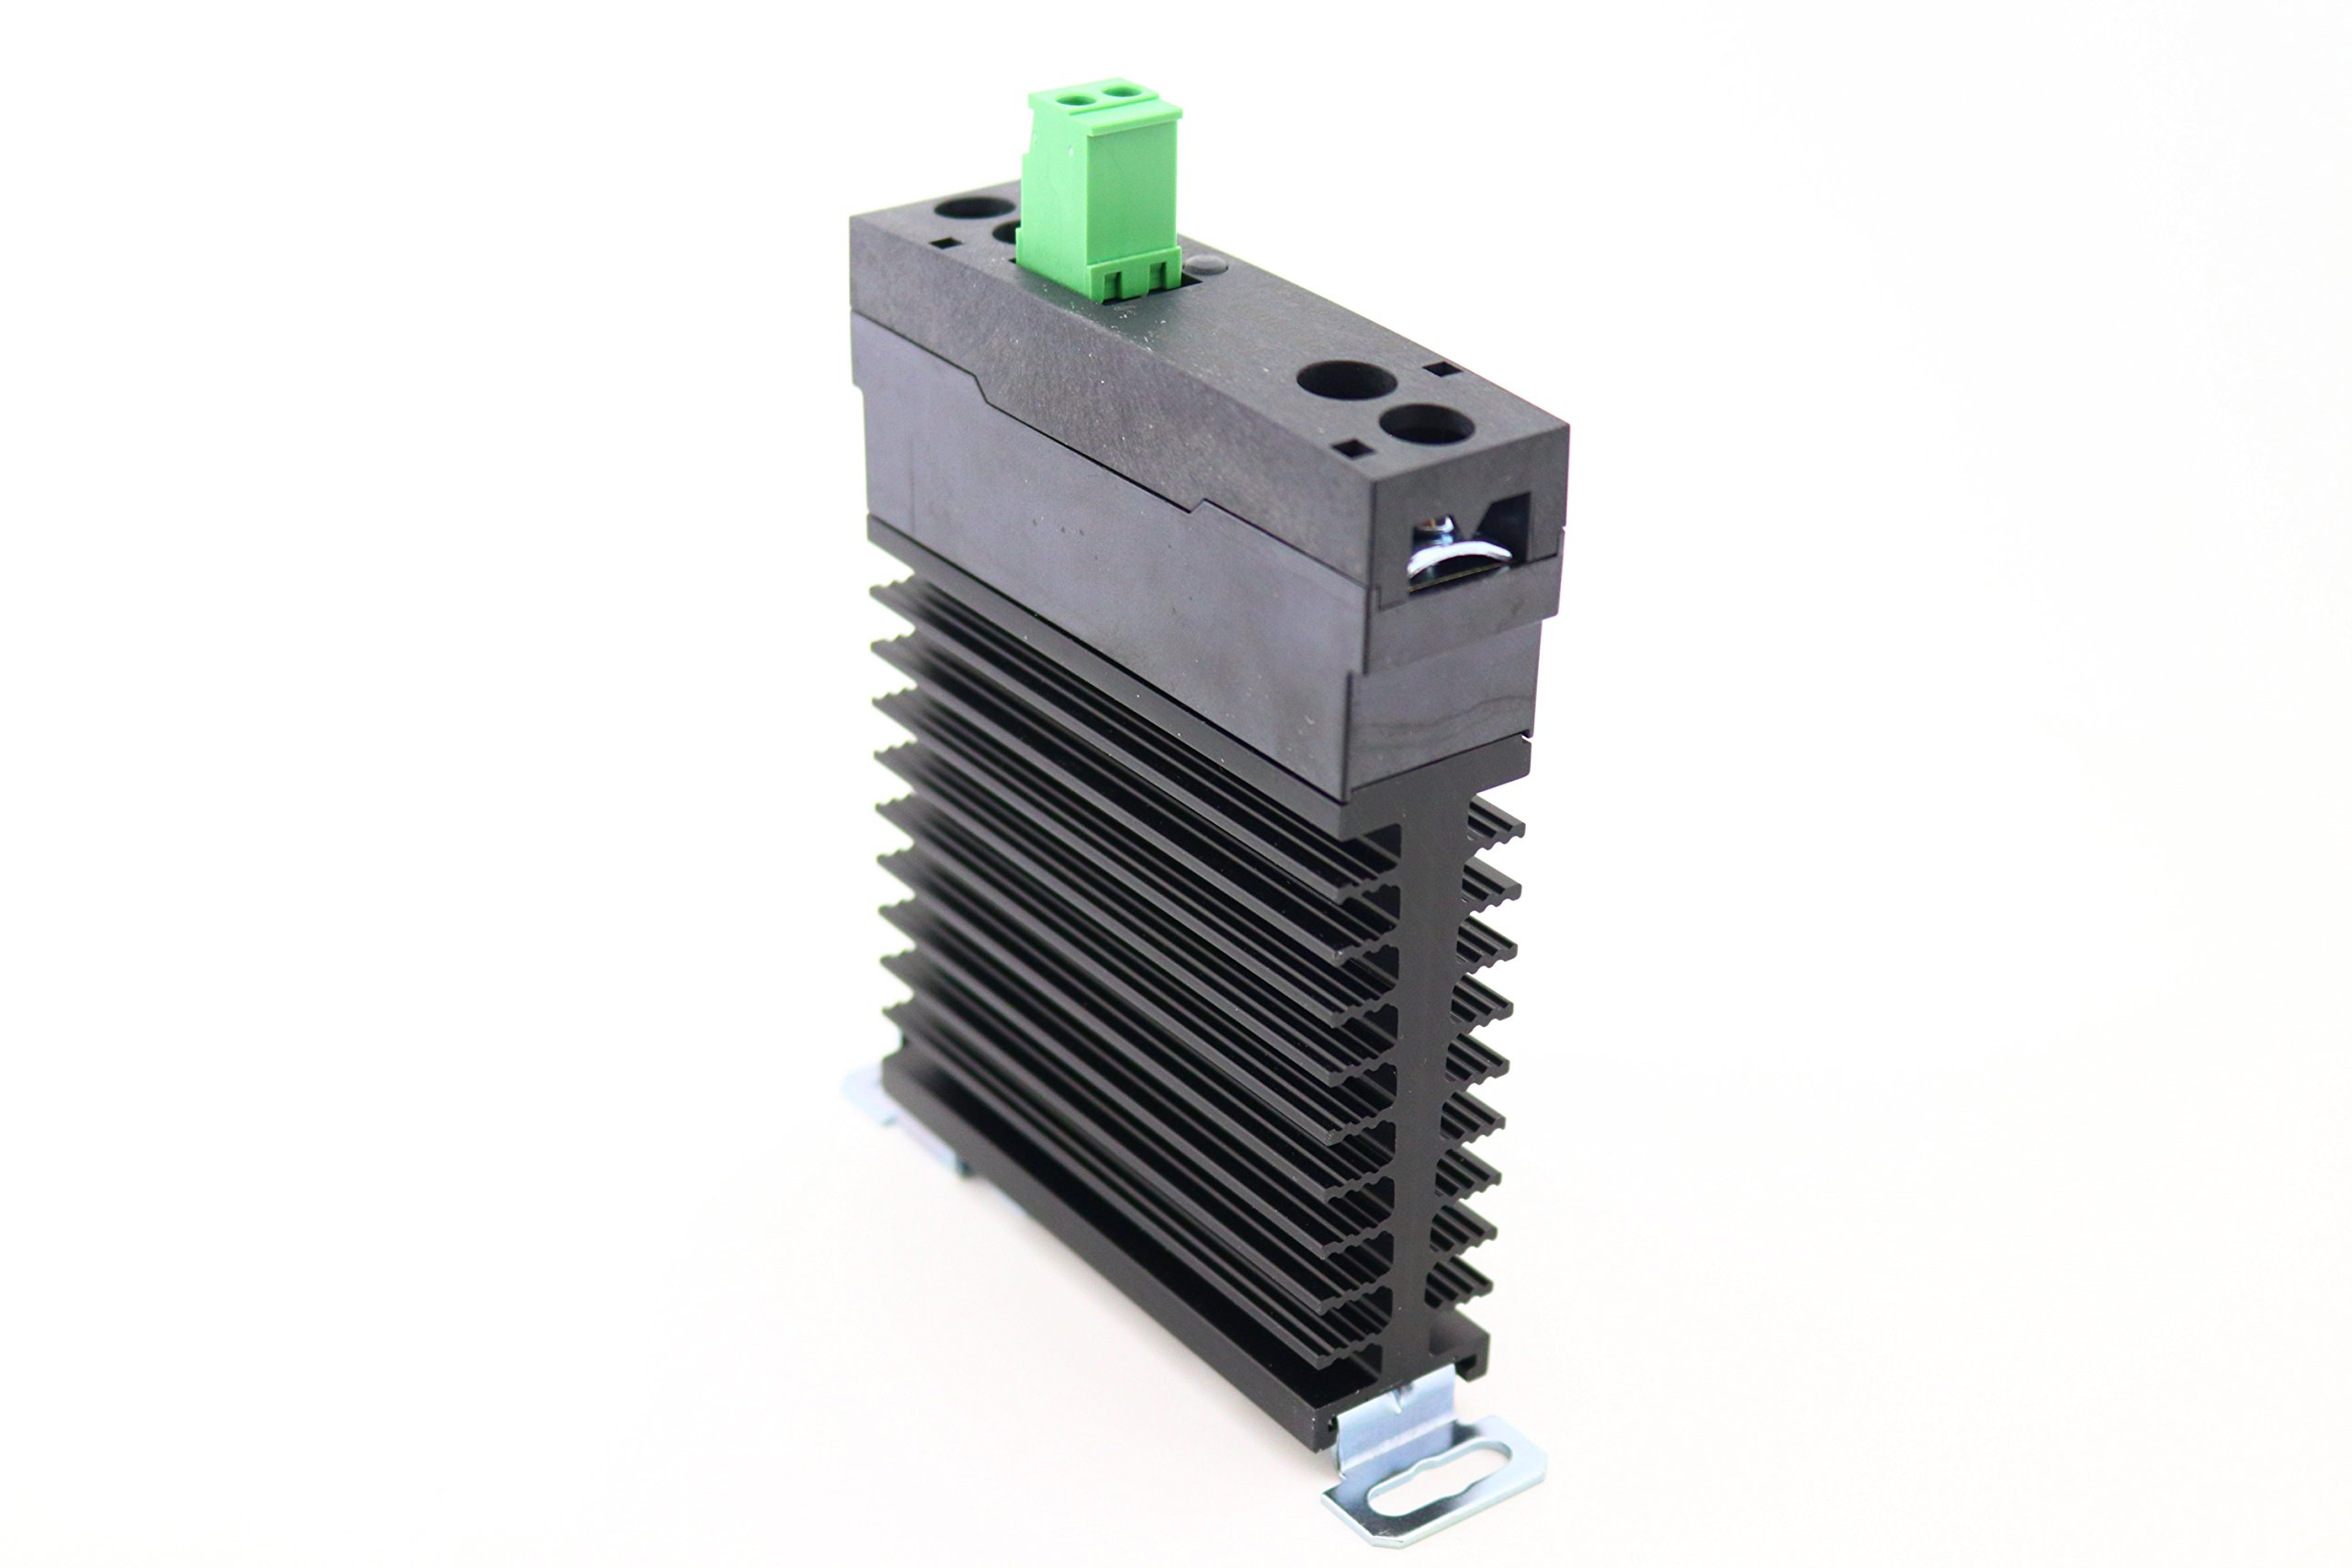 PCS55-D-240A-20Z | 20 Amp, 280 VAC Output, DIN Rail Mount, Solid State Relay with Integrated Heat Sink, 4-32 VDC Control Voltage and Zero Crossing